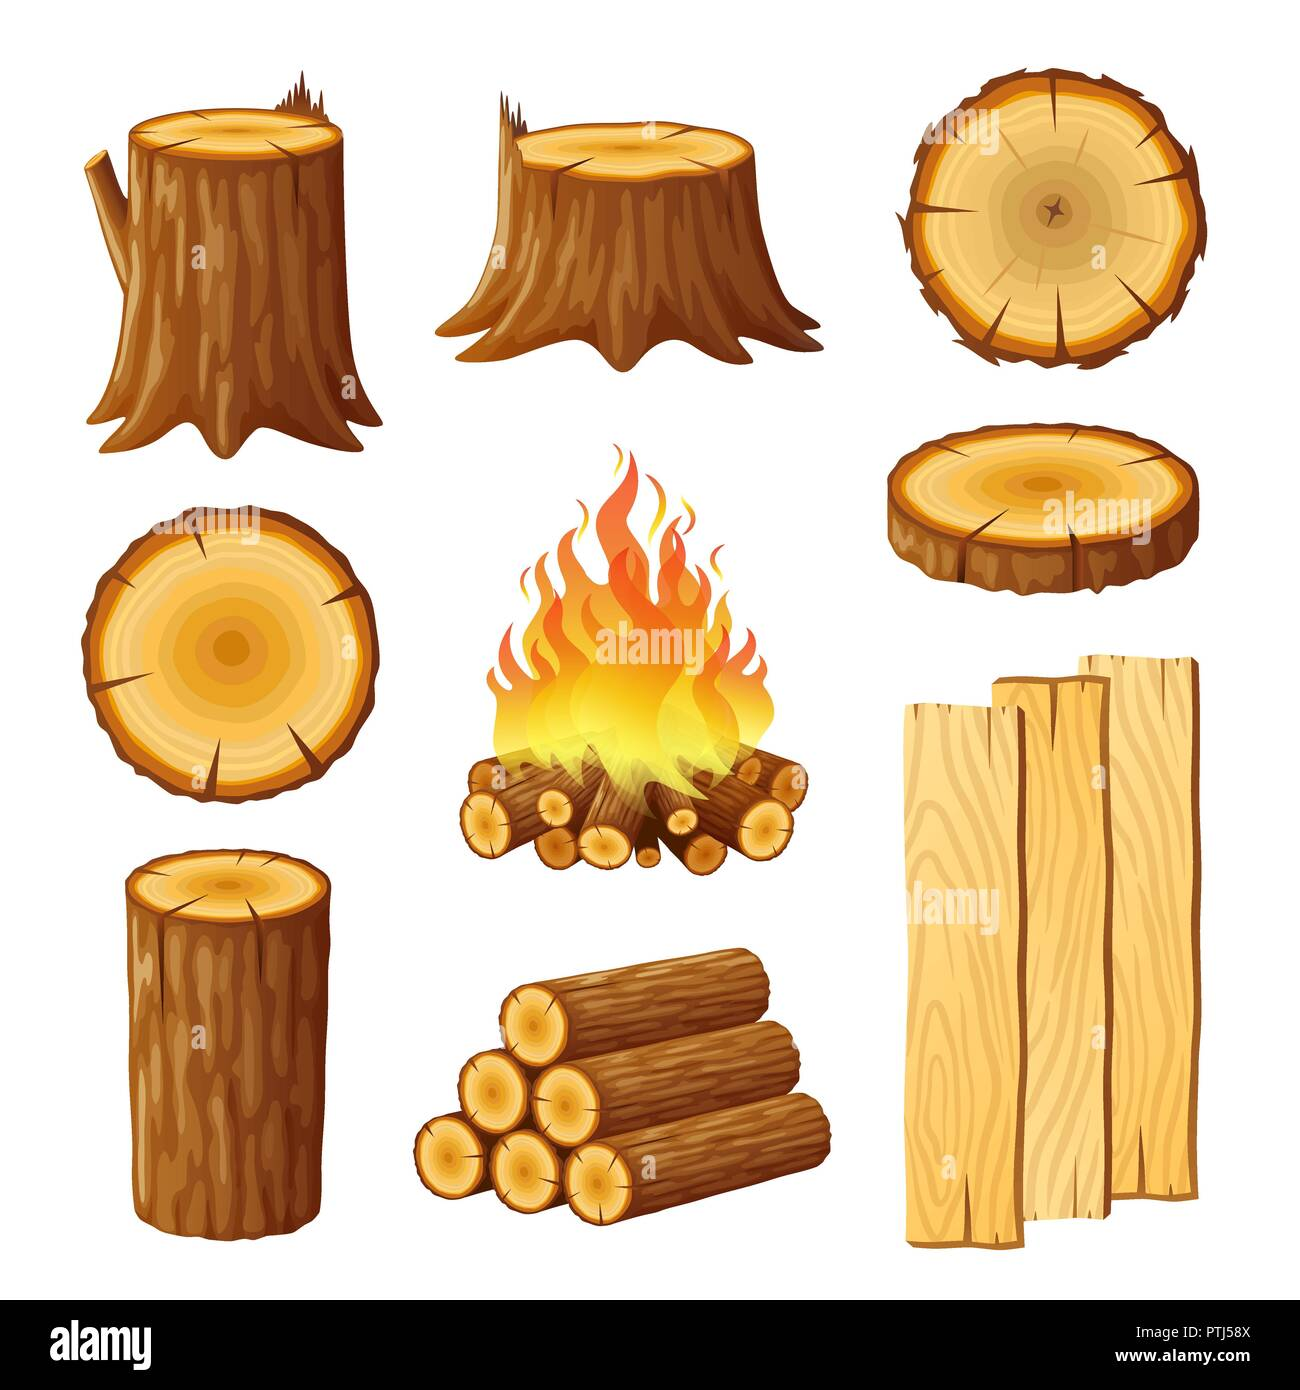 Set of logging, stumps and boards, woodpile and wood logs - Stock Image